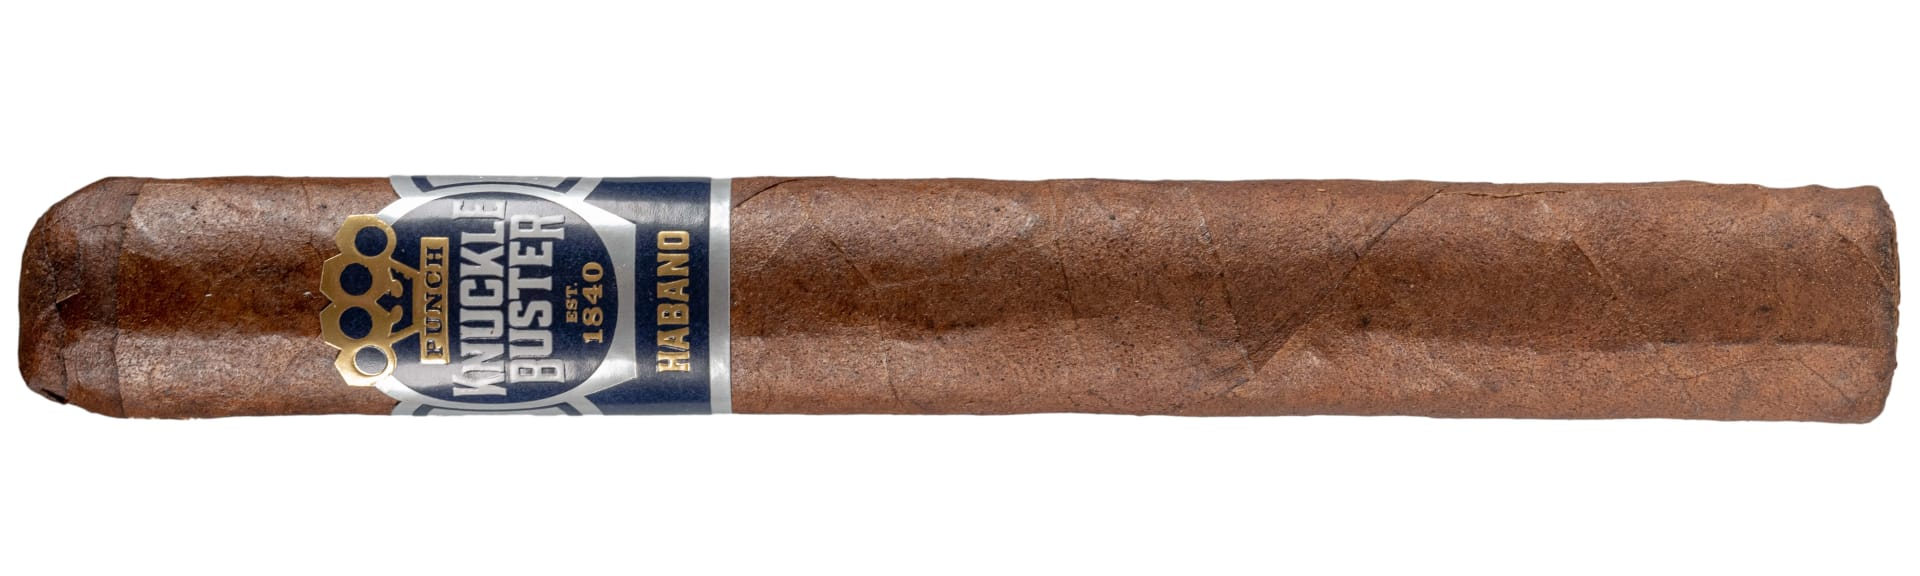 Blind Cigar Review: Punch | Knuckle Buster Toro Featured Image